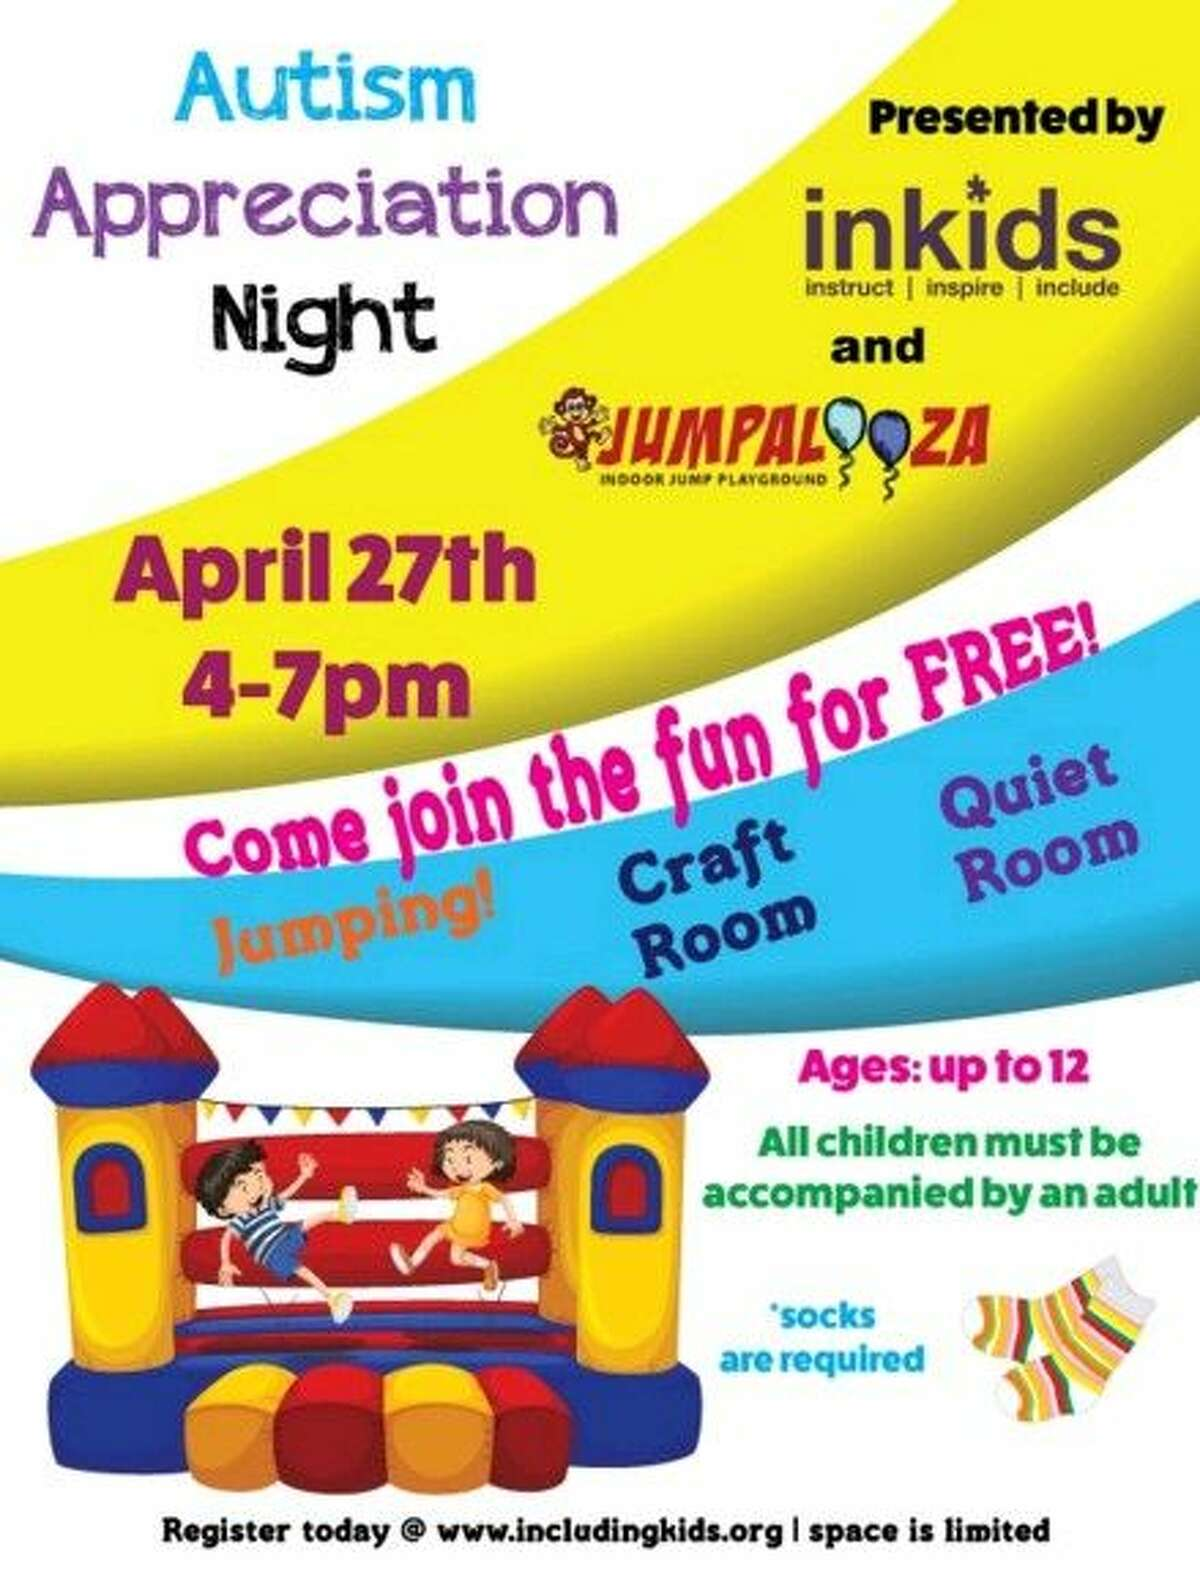 InKids has partnered with Jumpalooza in Humble to host Autism Appreciation Night at Jumpalooza Wednesday, April 27 from 4 p.m. to 7 p.m.